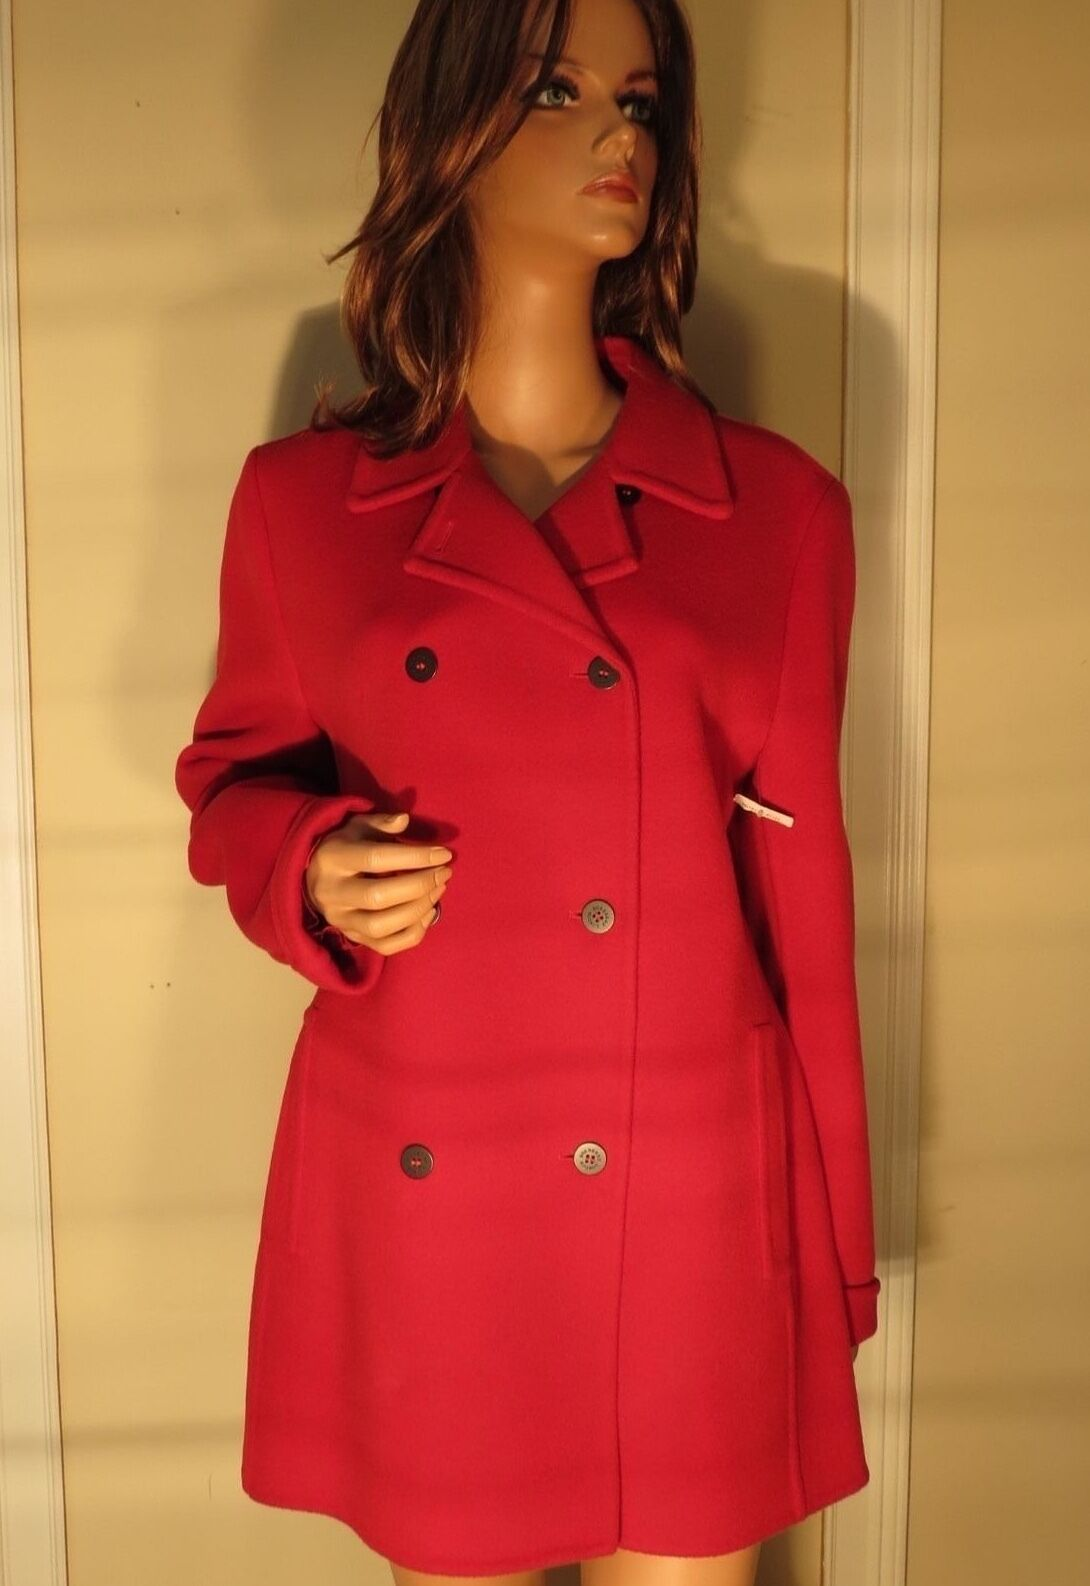 Womens Authentic Burberry London 100 Wool Red Pea Coat Jacket 14 ...